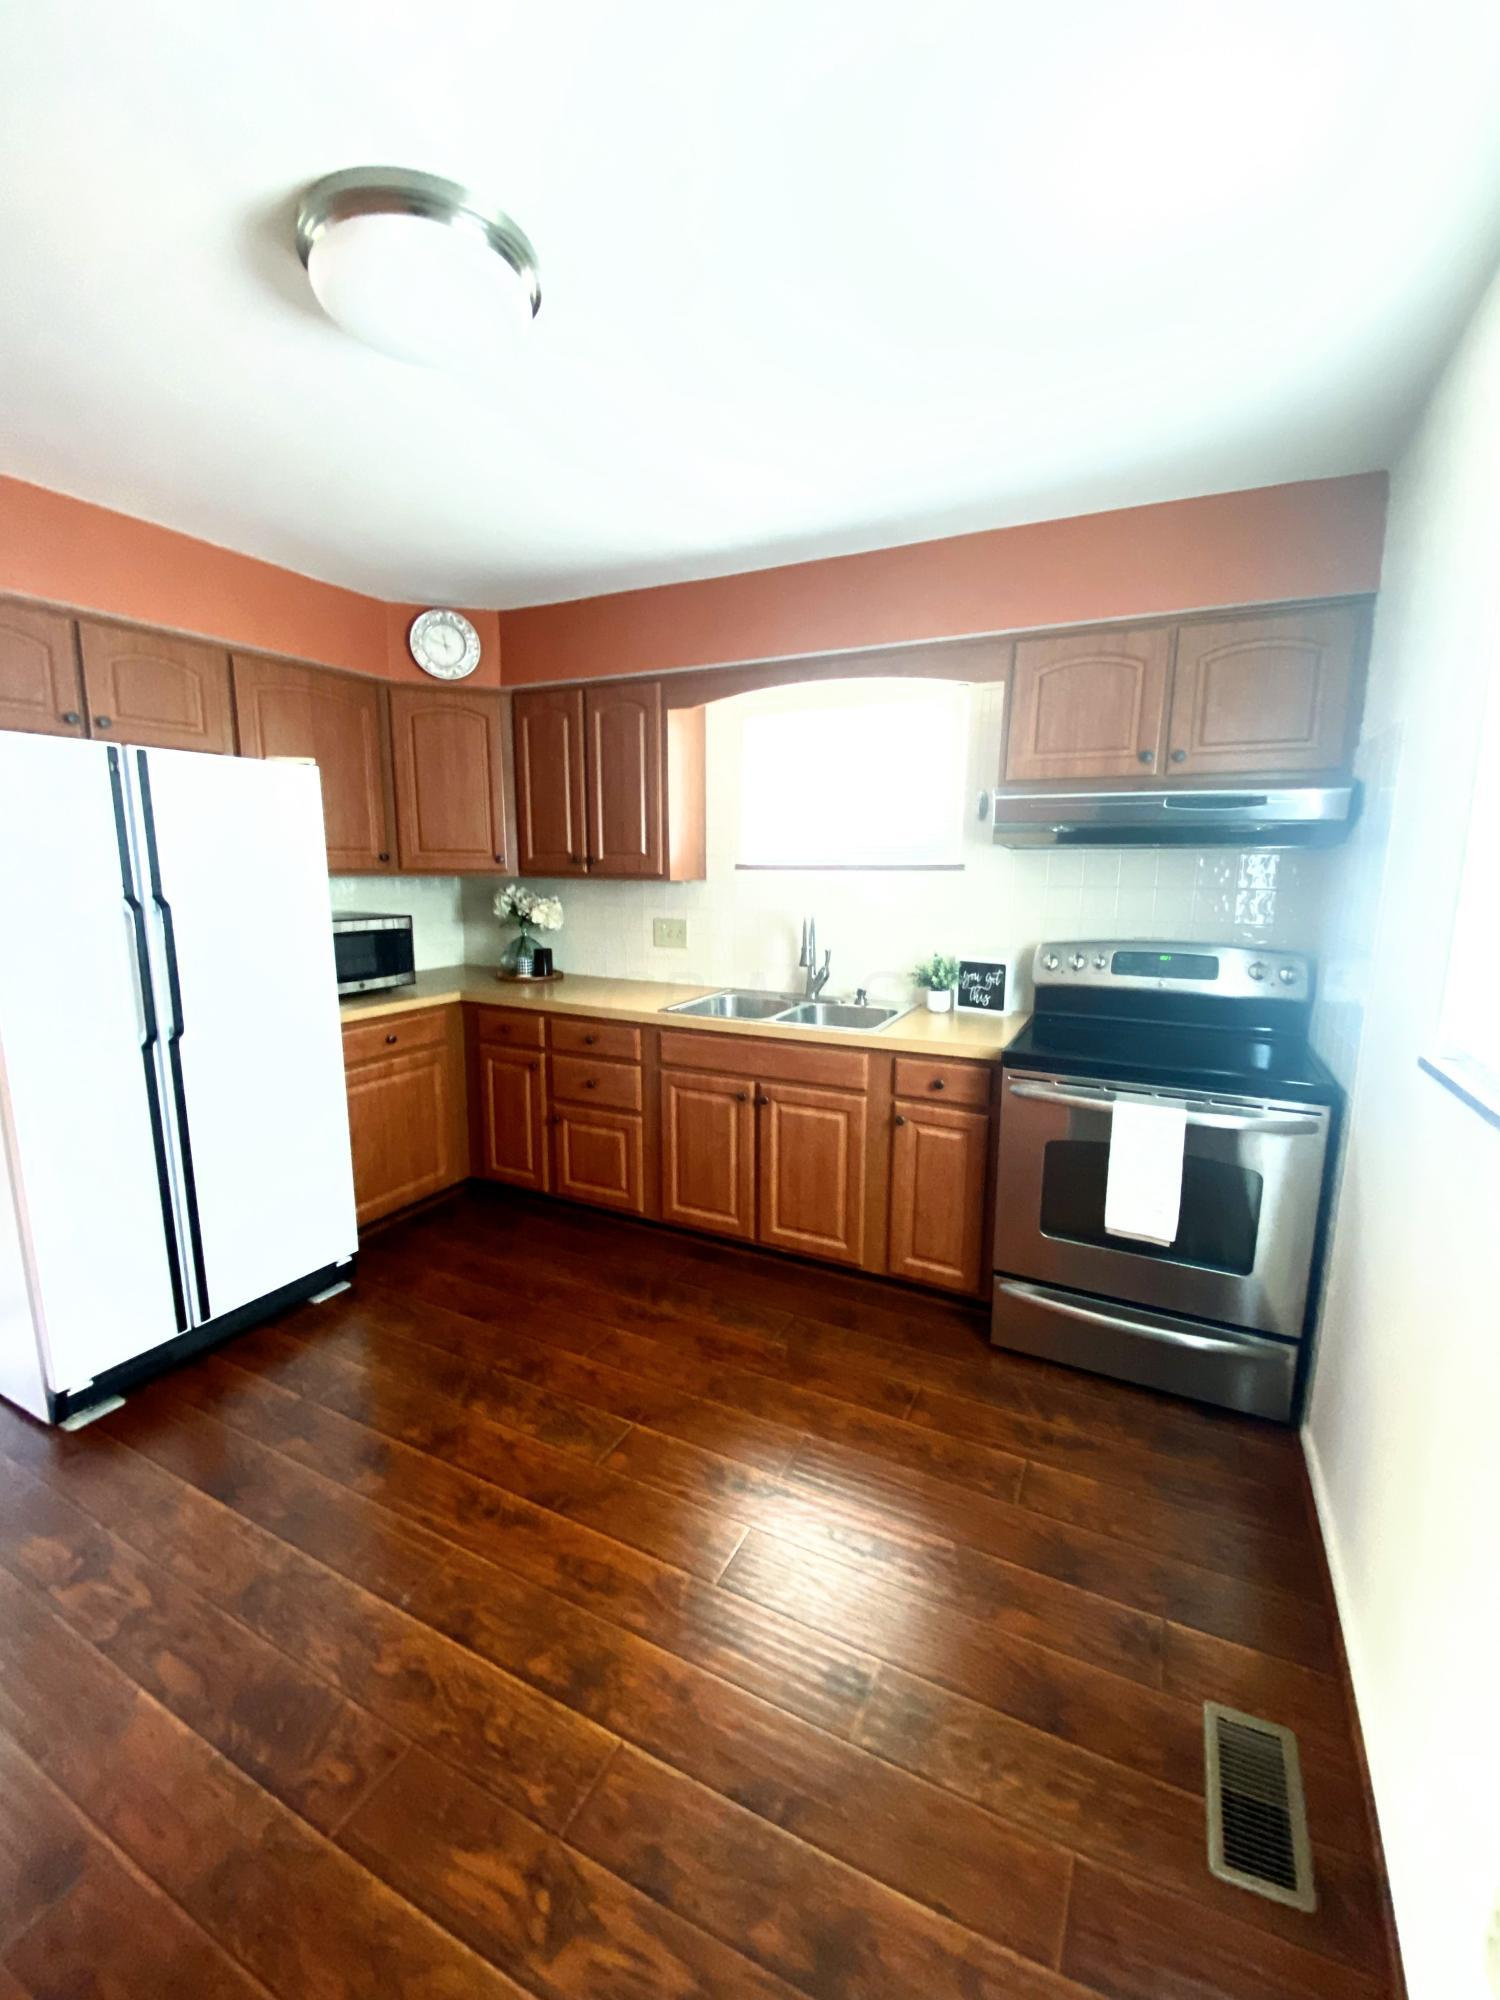 Kitchen with updated cabinets and floors